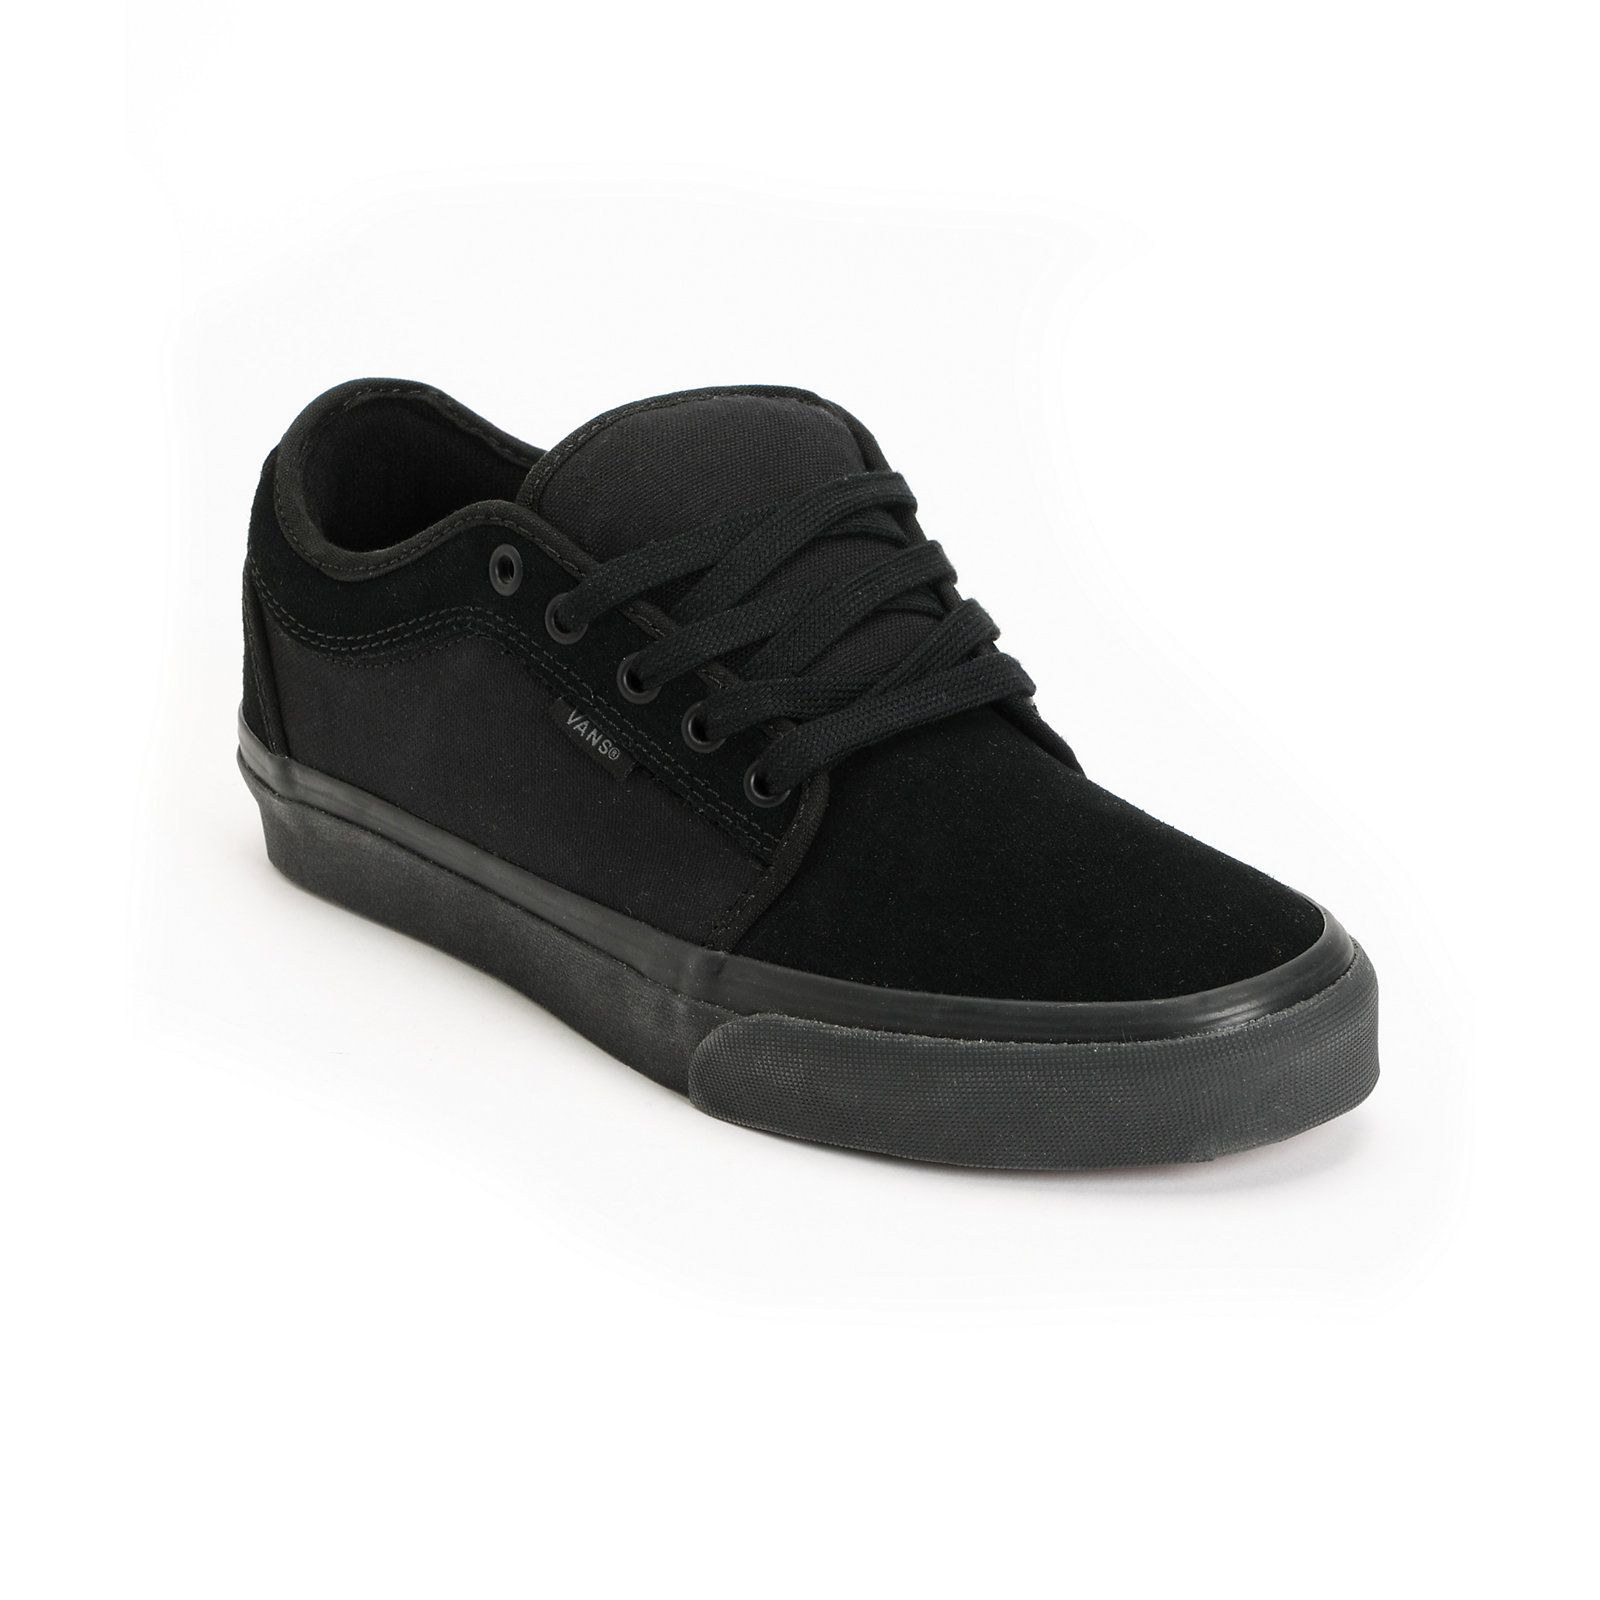 Vans Chukka Low All Black Skate Shoes | Vans chukka low, All